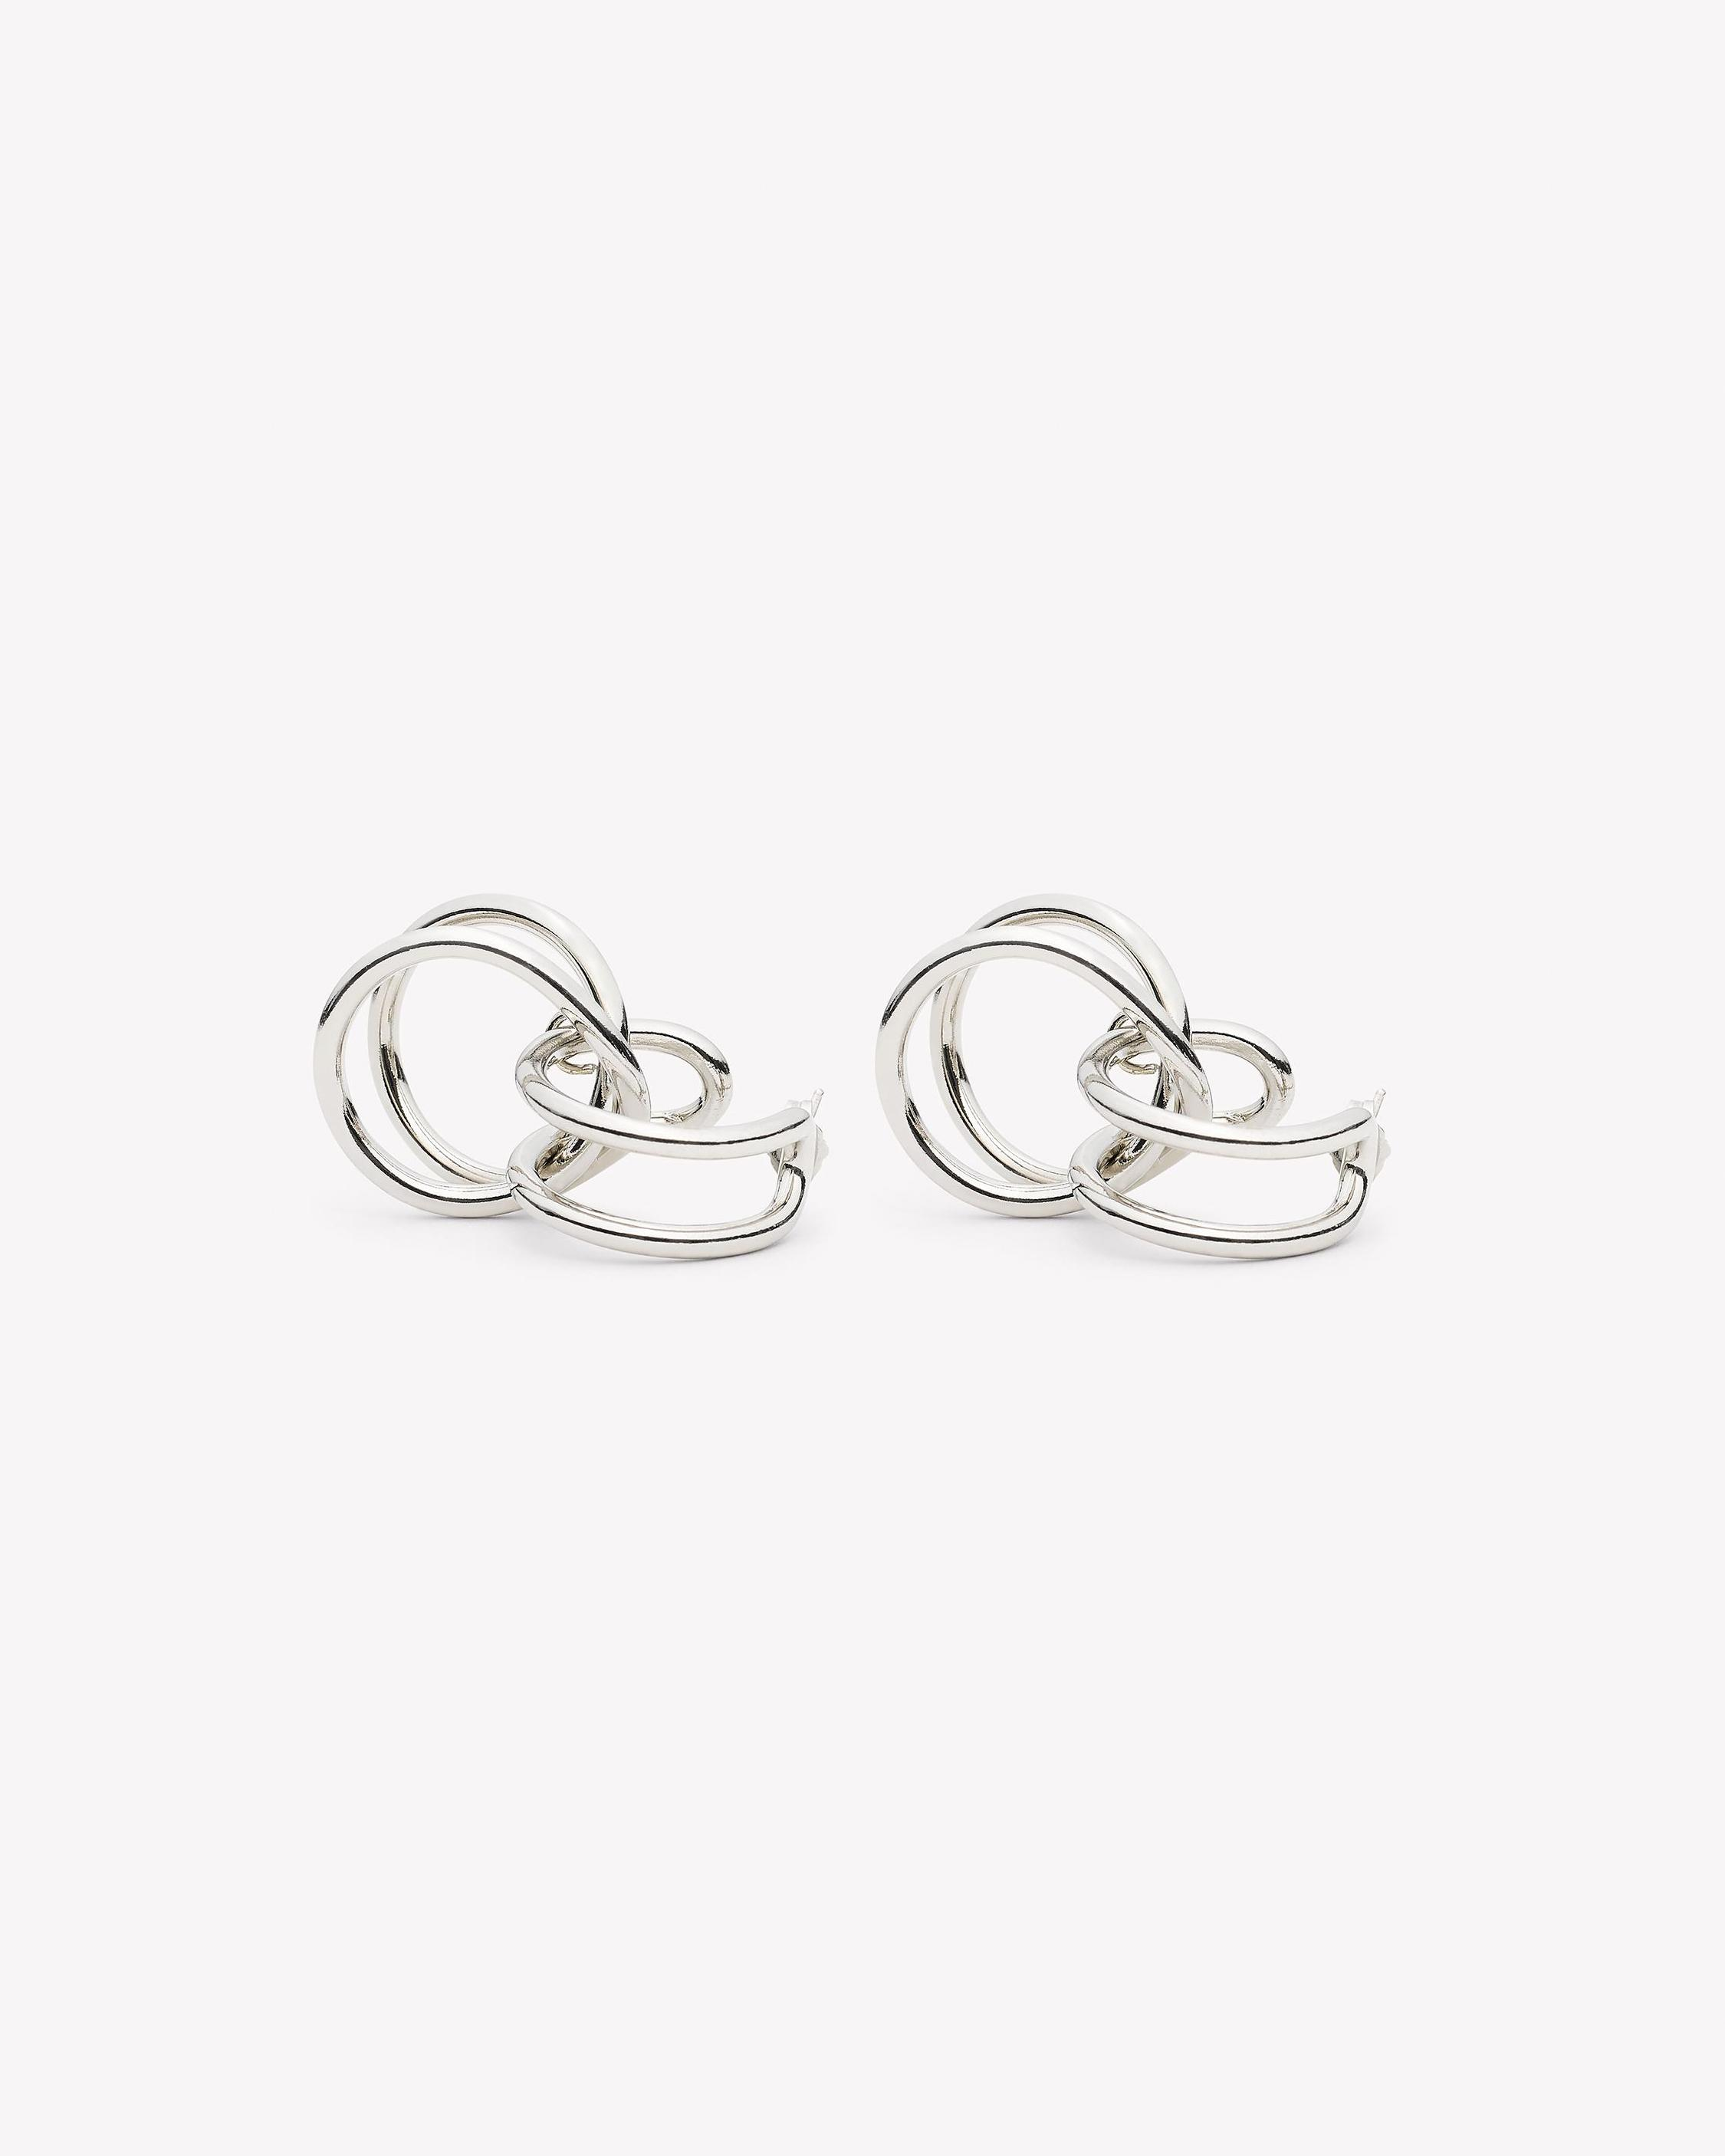 infinity by bestie rachna jewels silver earrings collection shop textured love